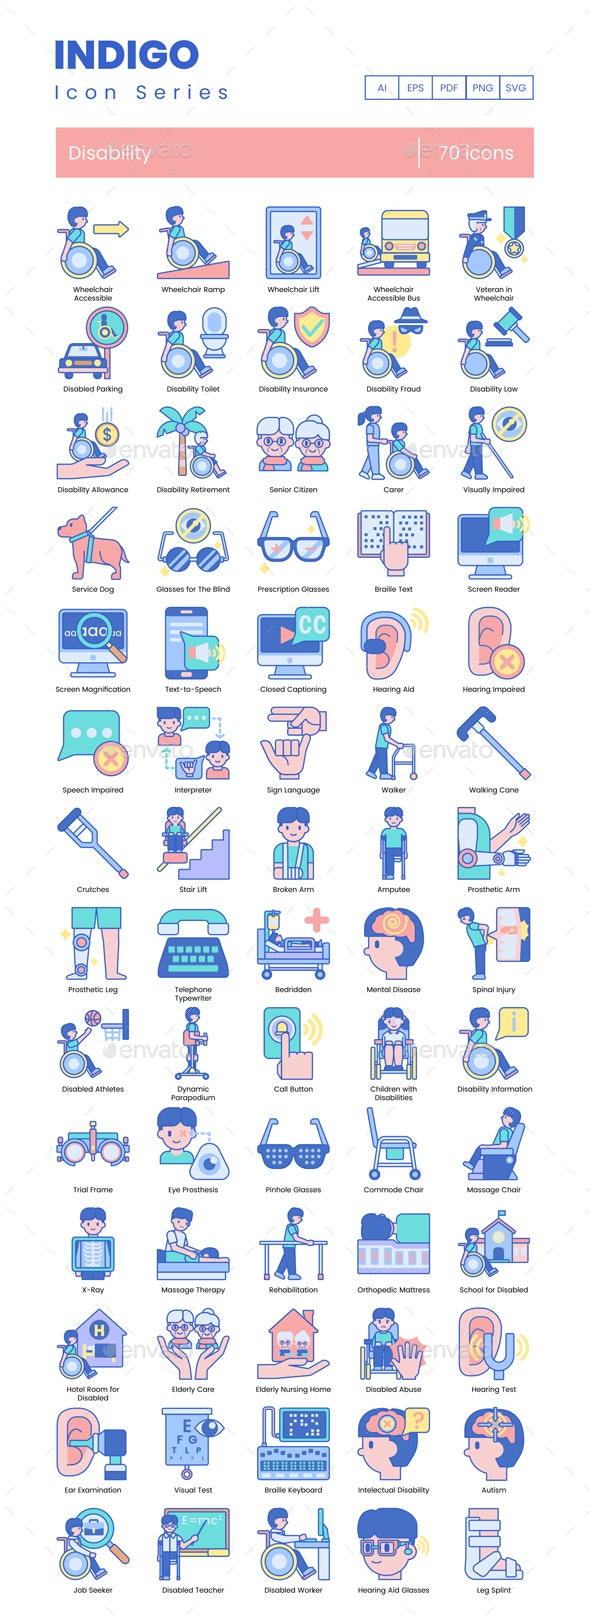 Disability Icons - Indigo - Miscellaneous Icons